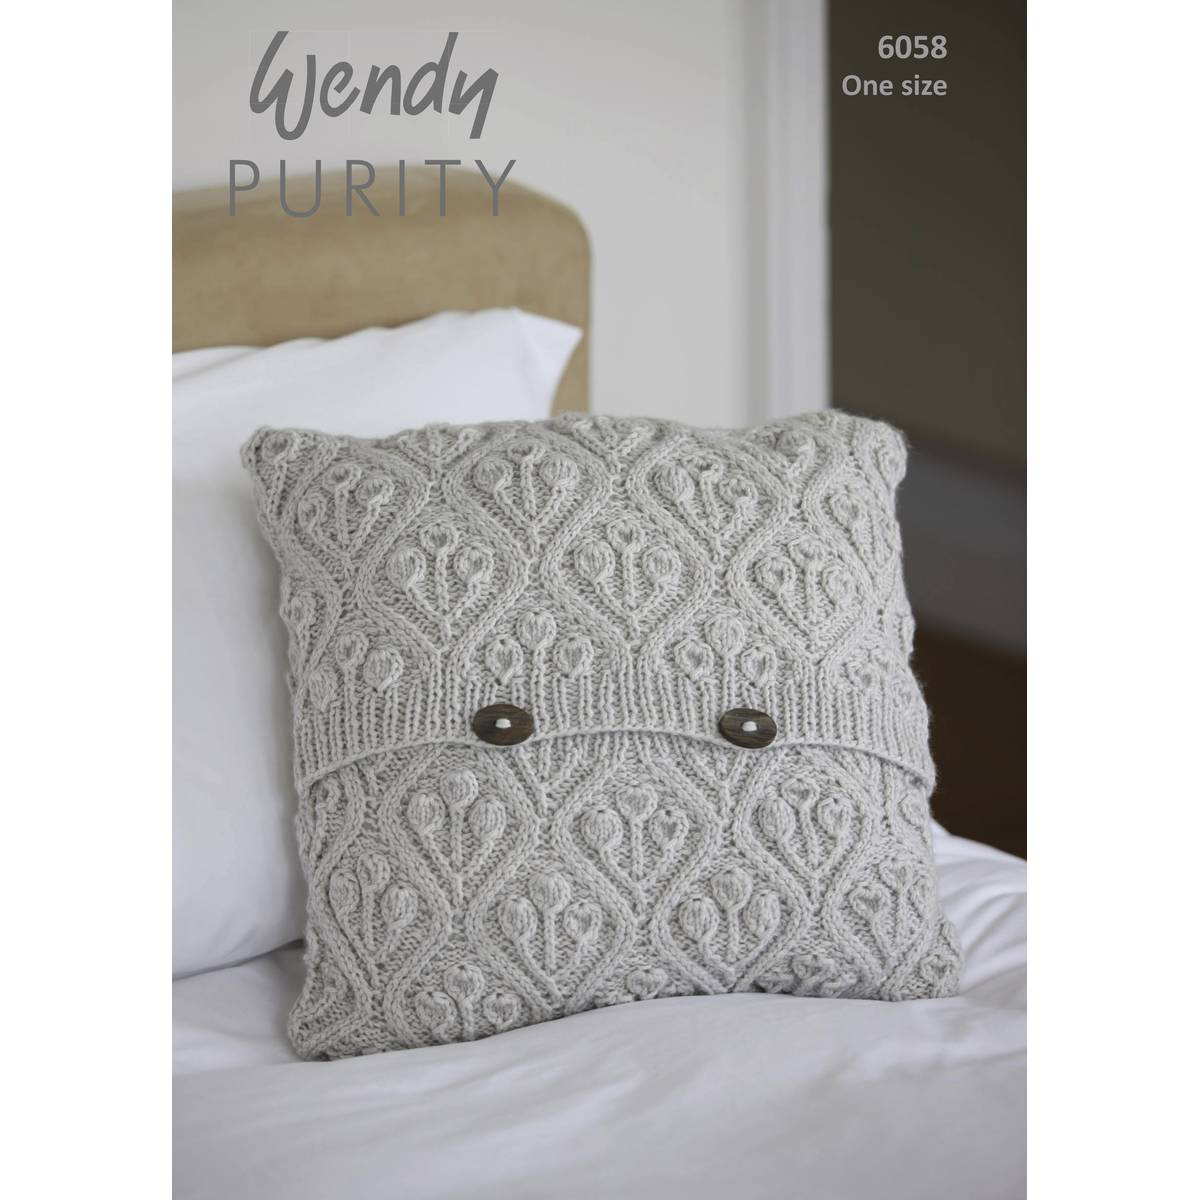 Wendy Purity Patterned Cushion Knitting Pattern - Fast Shipping in NZ